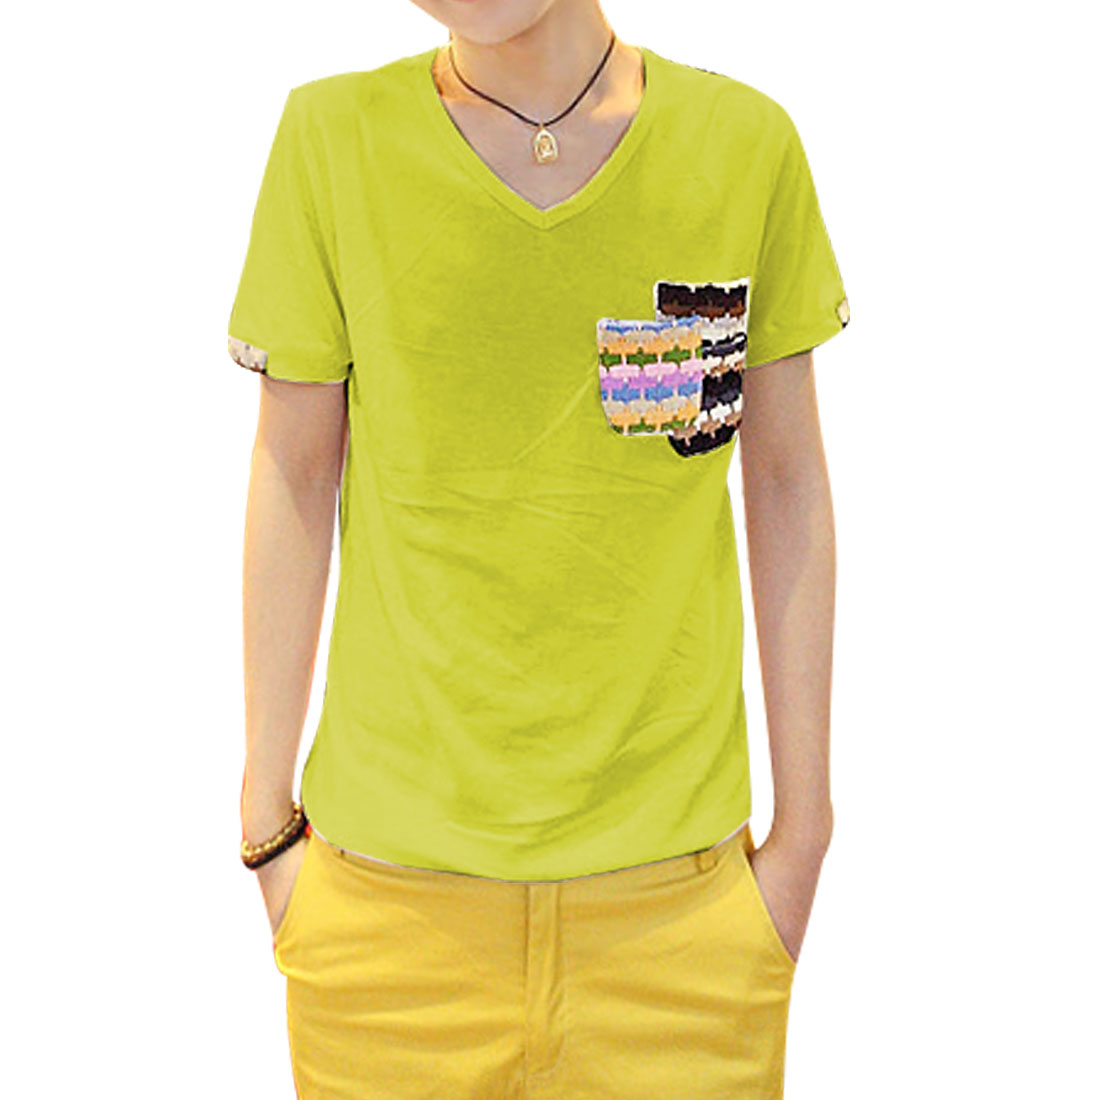 S Lime V Neck Short Sleeves Round Hem Chest Pockets Men T-Shirt